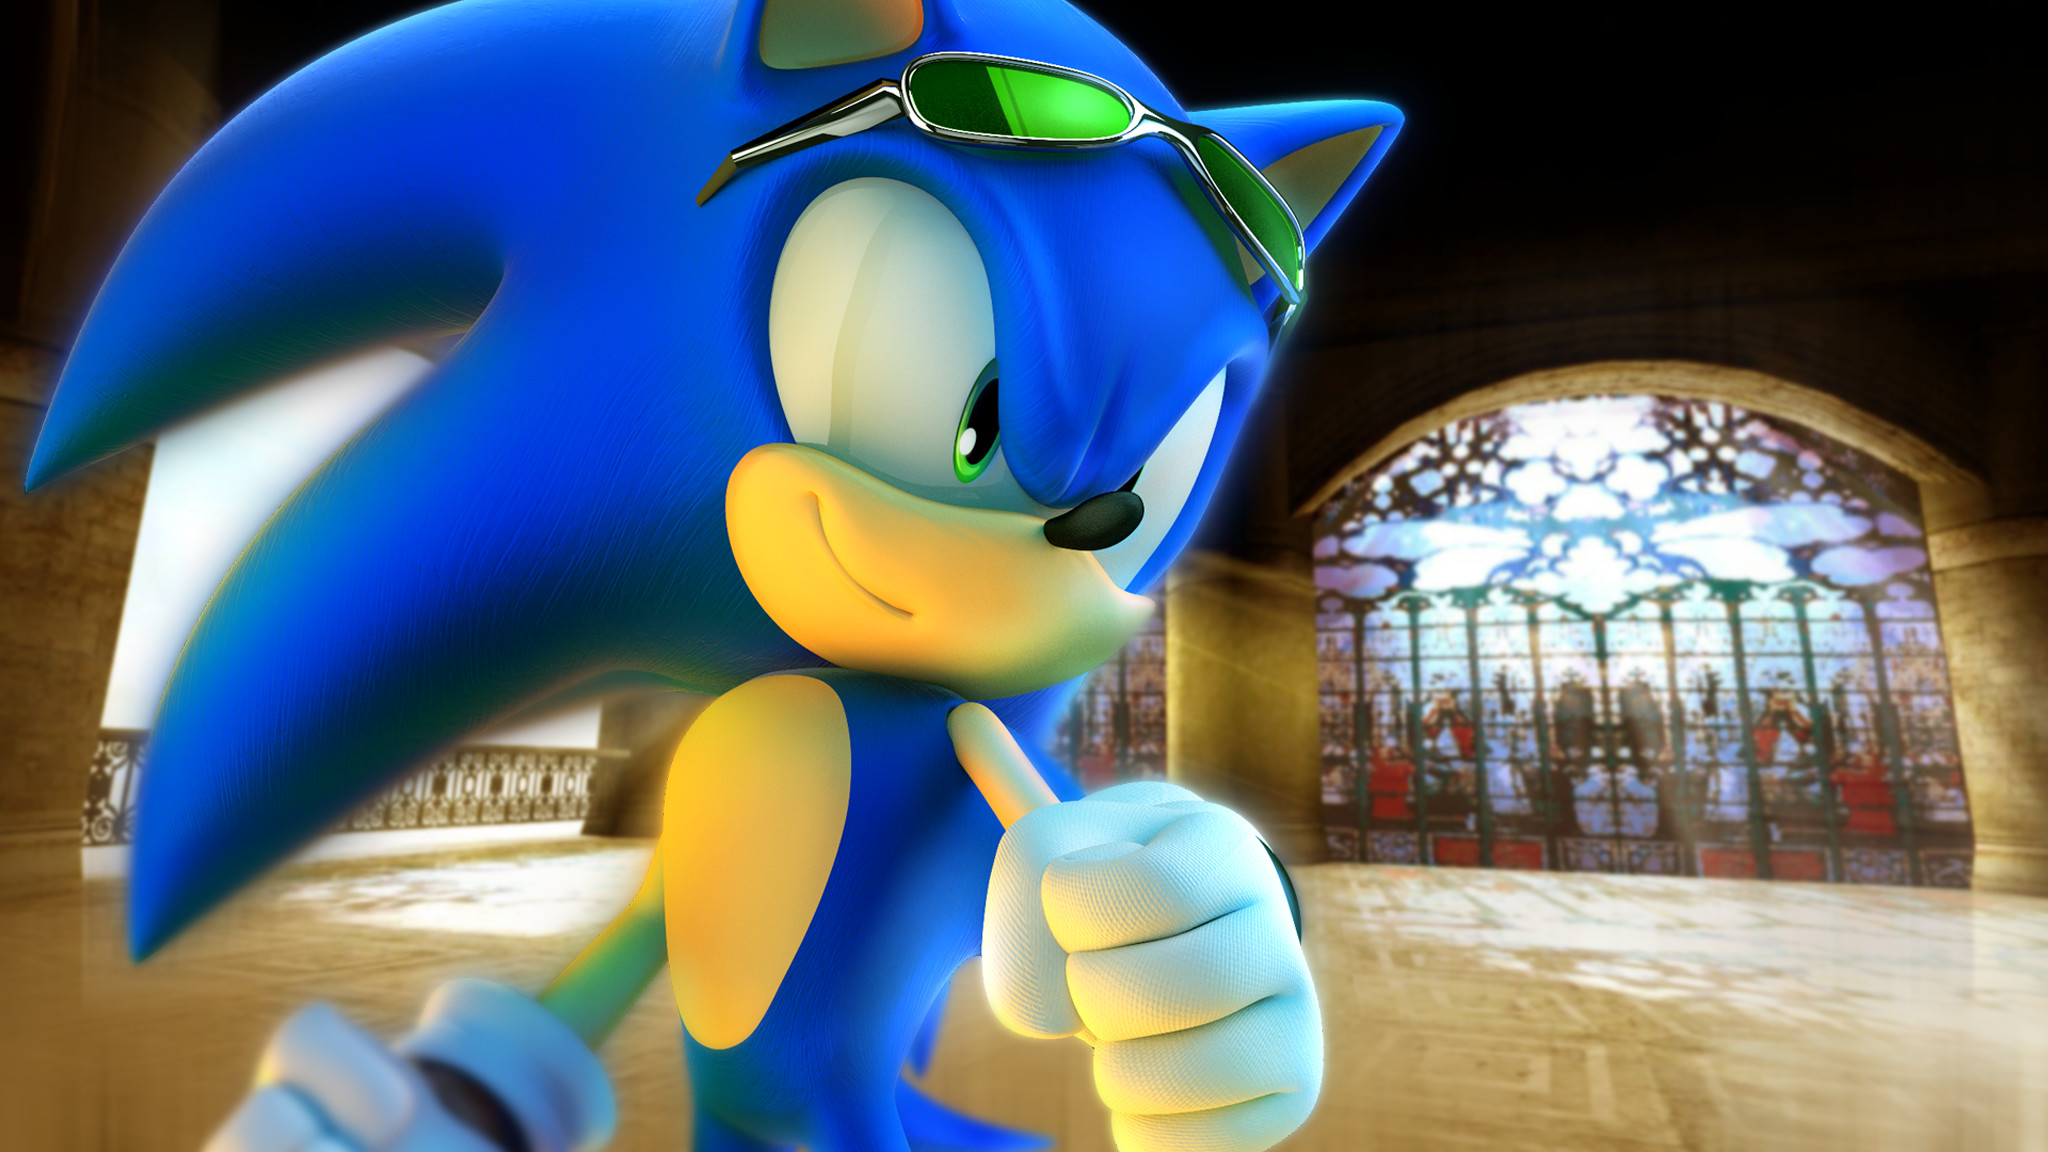 … RealSonicSpeed Sonic in a Digital Dimension by RealSonicSpeed